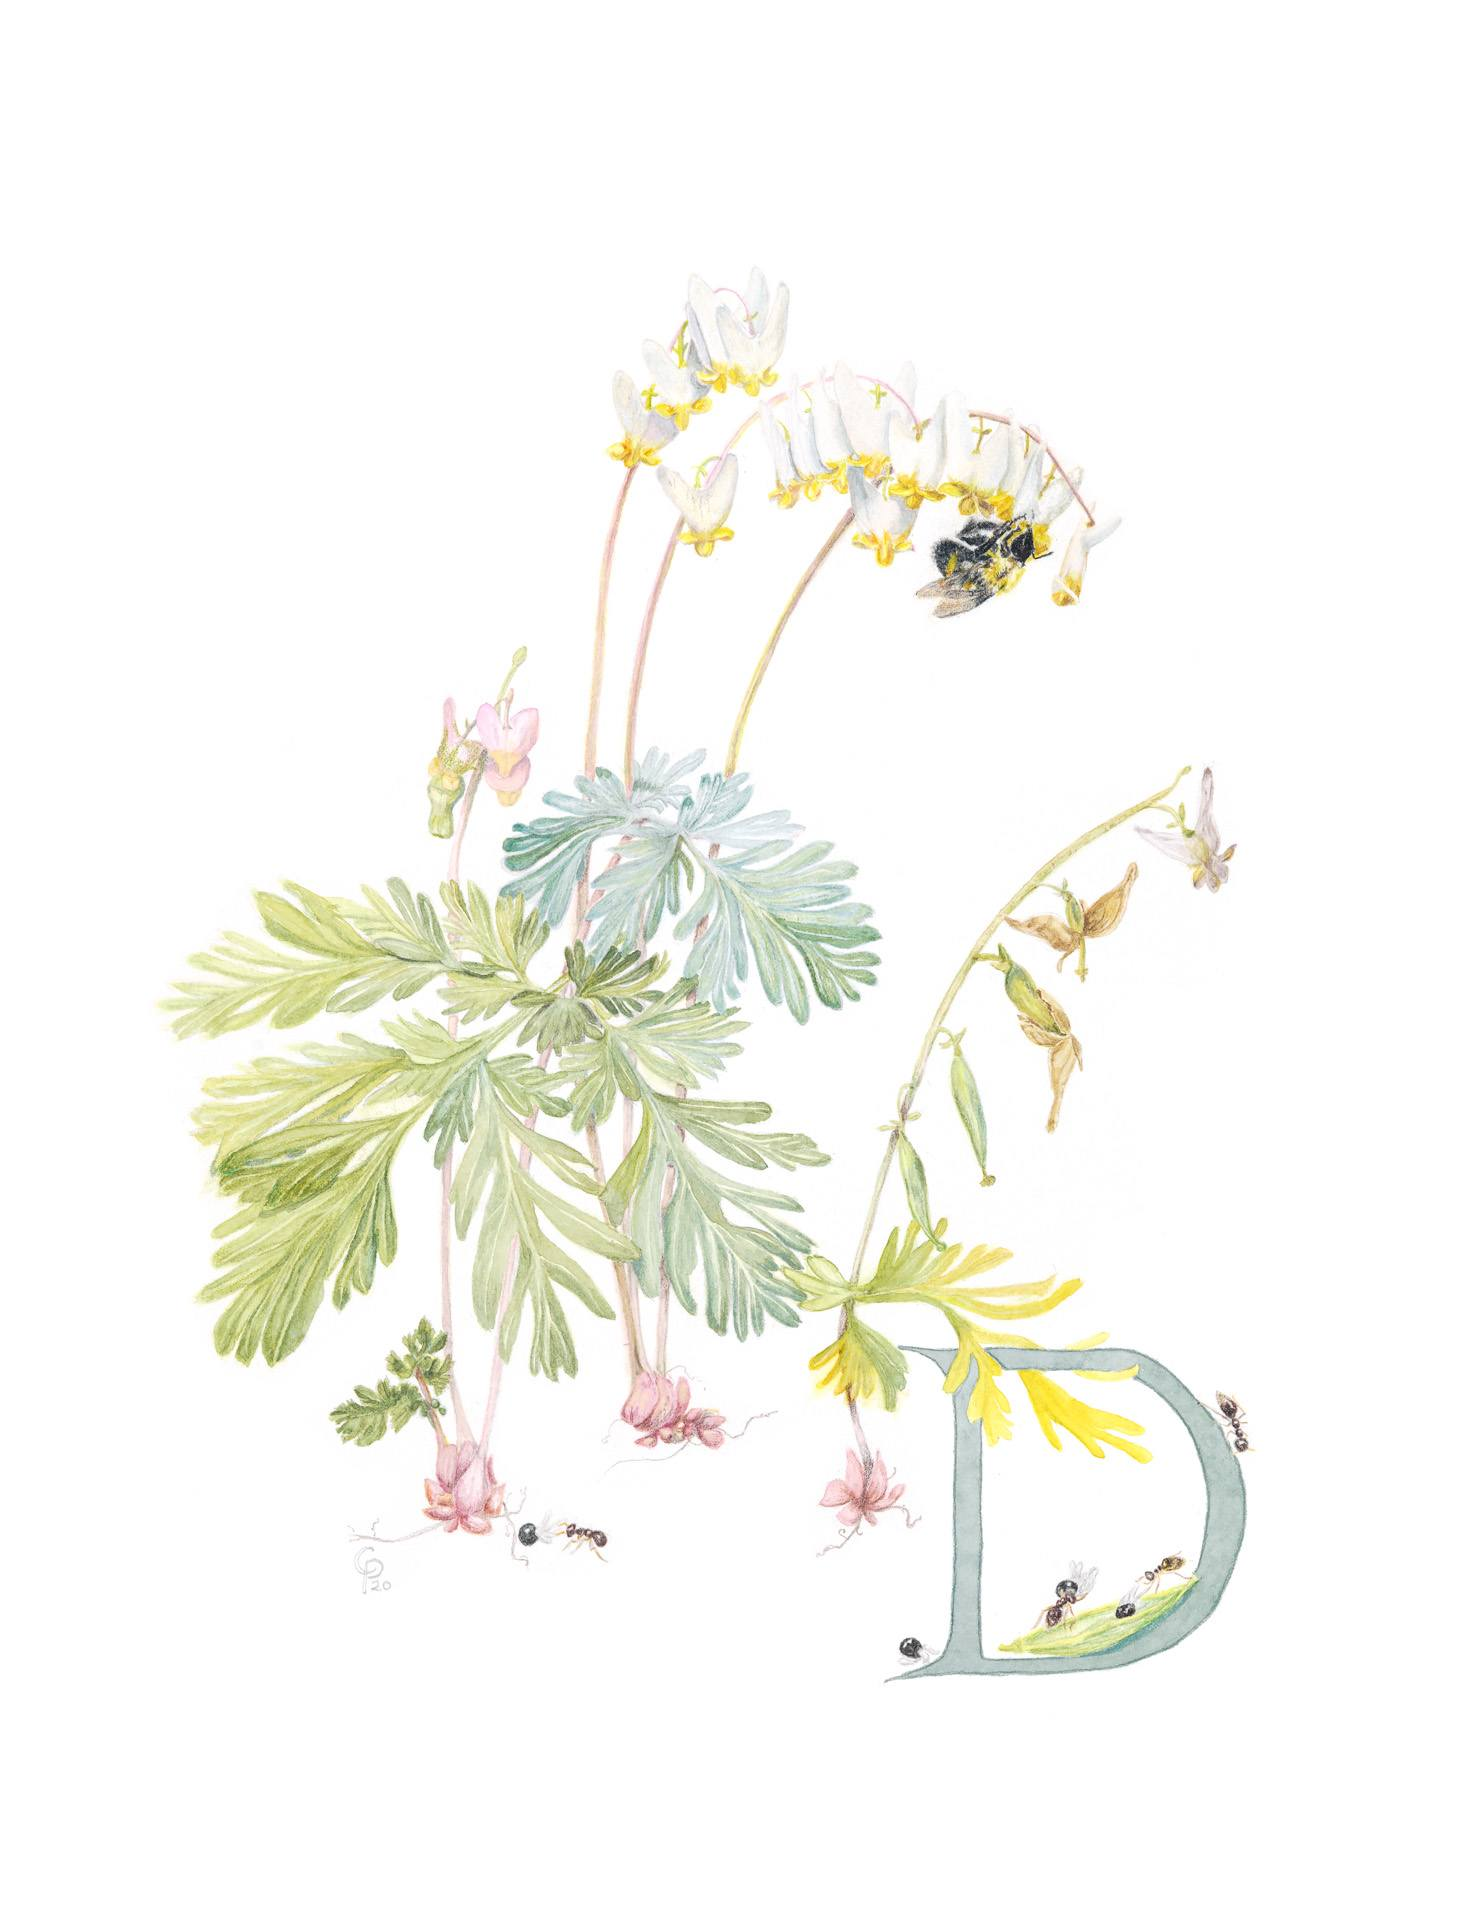 Dutchman's breeches, Dicentra cucullaria, Giclée print of watercolor and colored pencil by Catherine Park